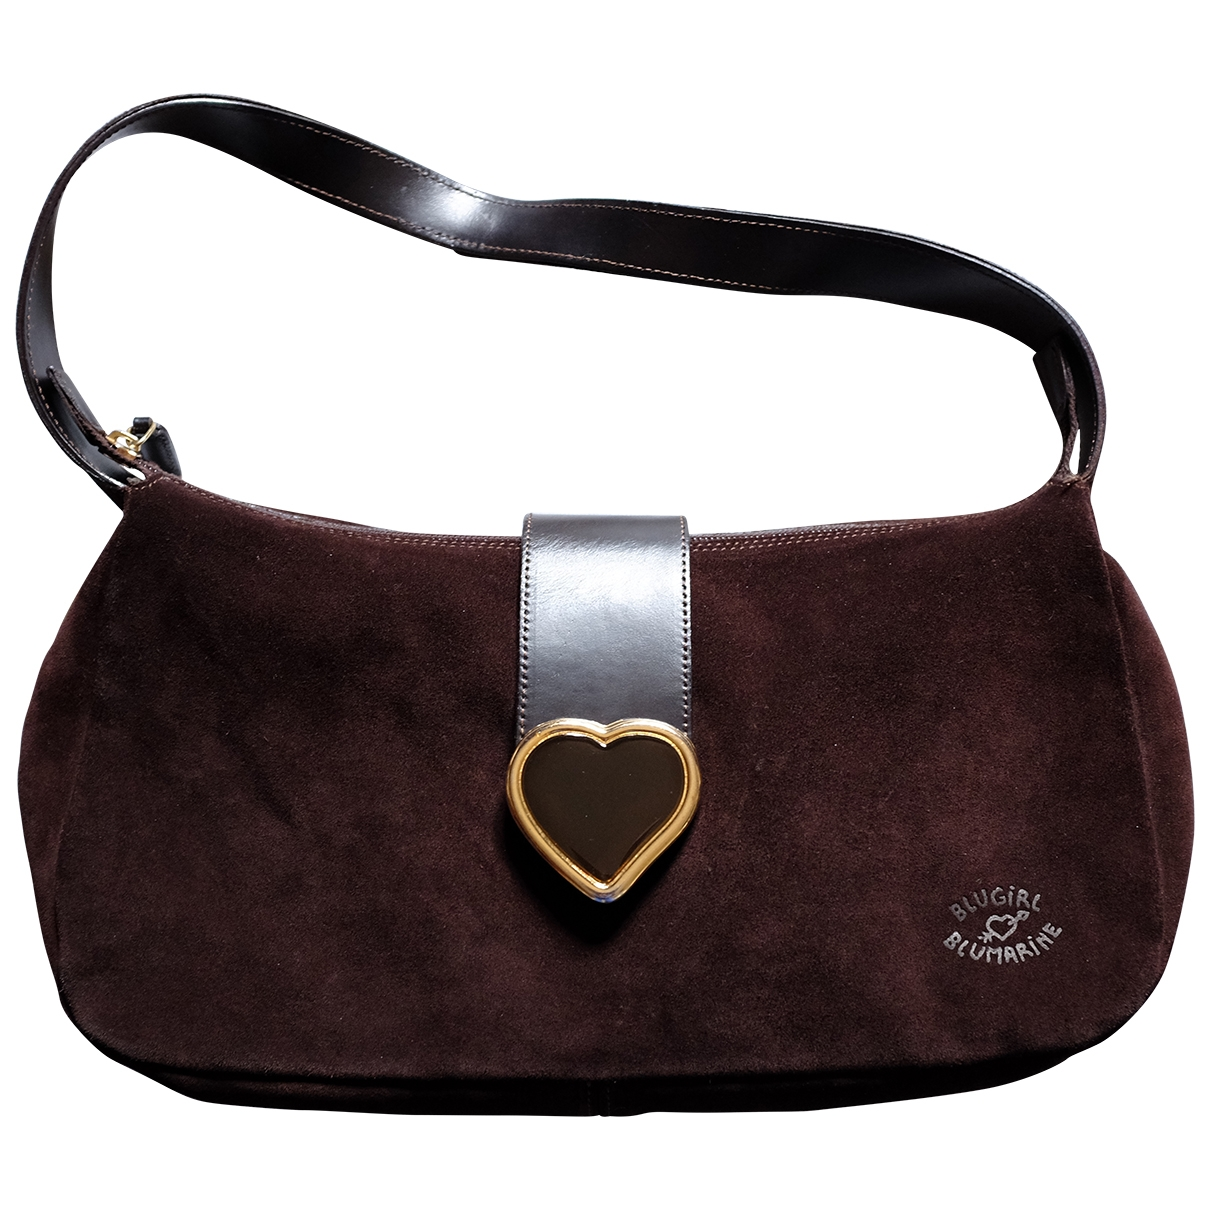 Blumarine \N Brown Suede handbag for Women \N